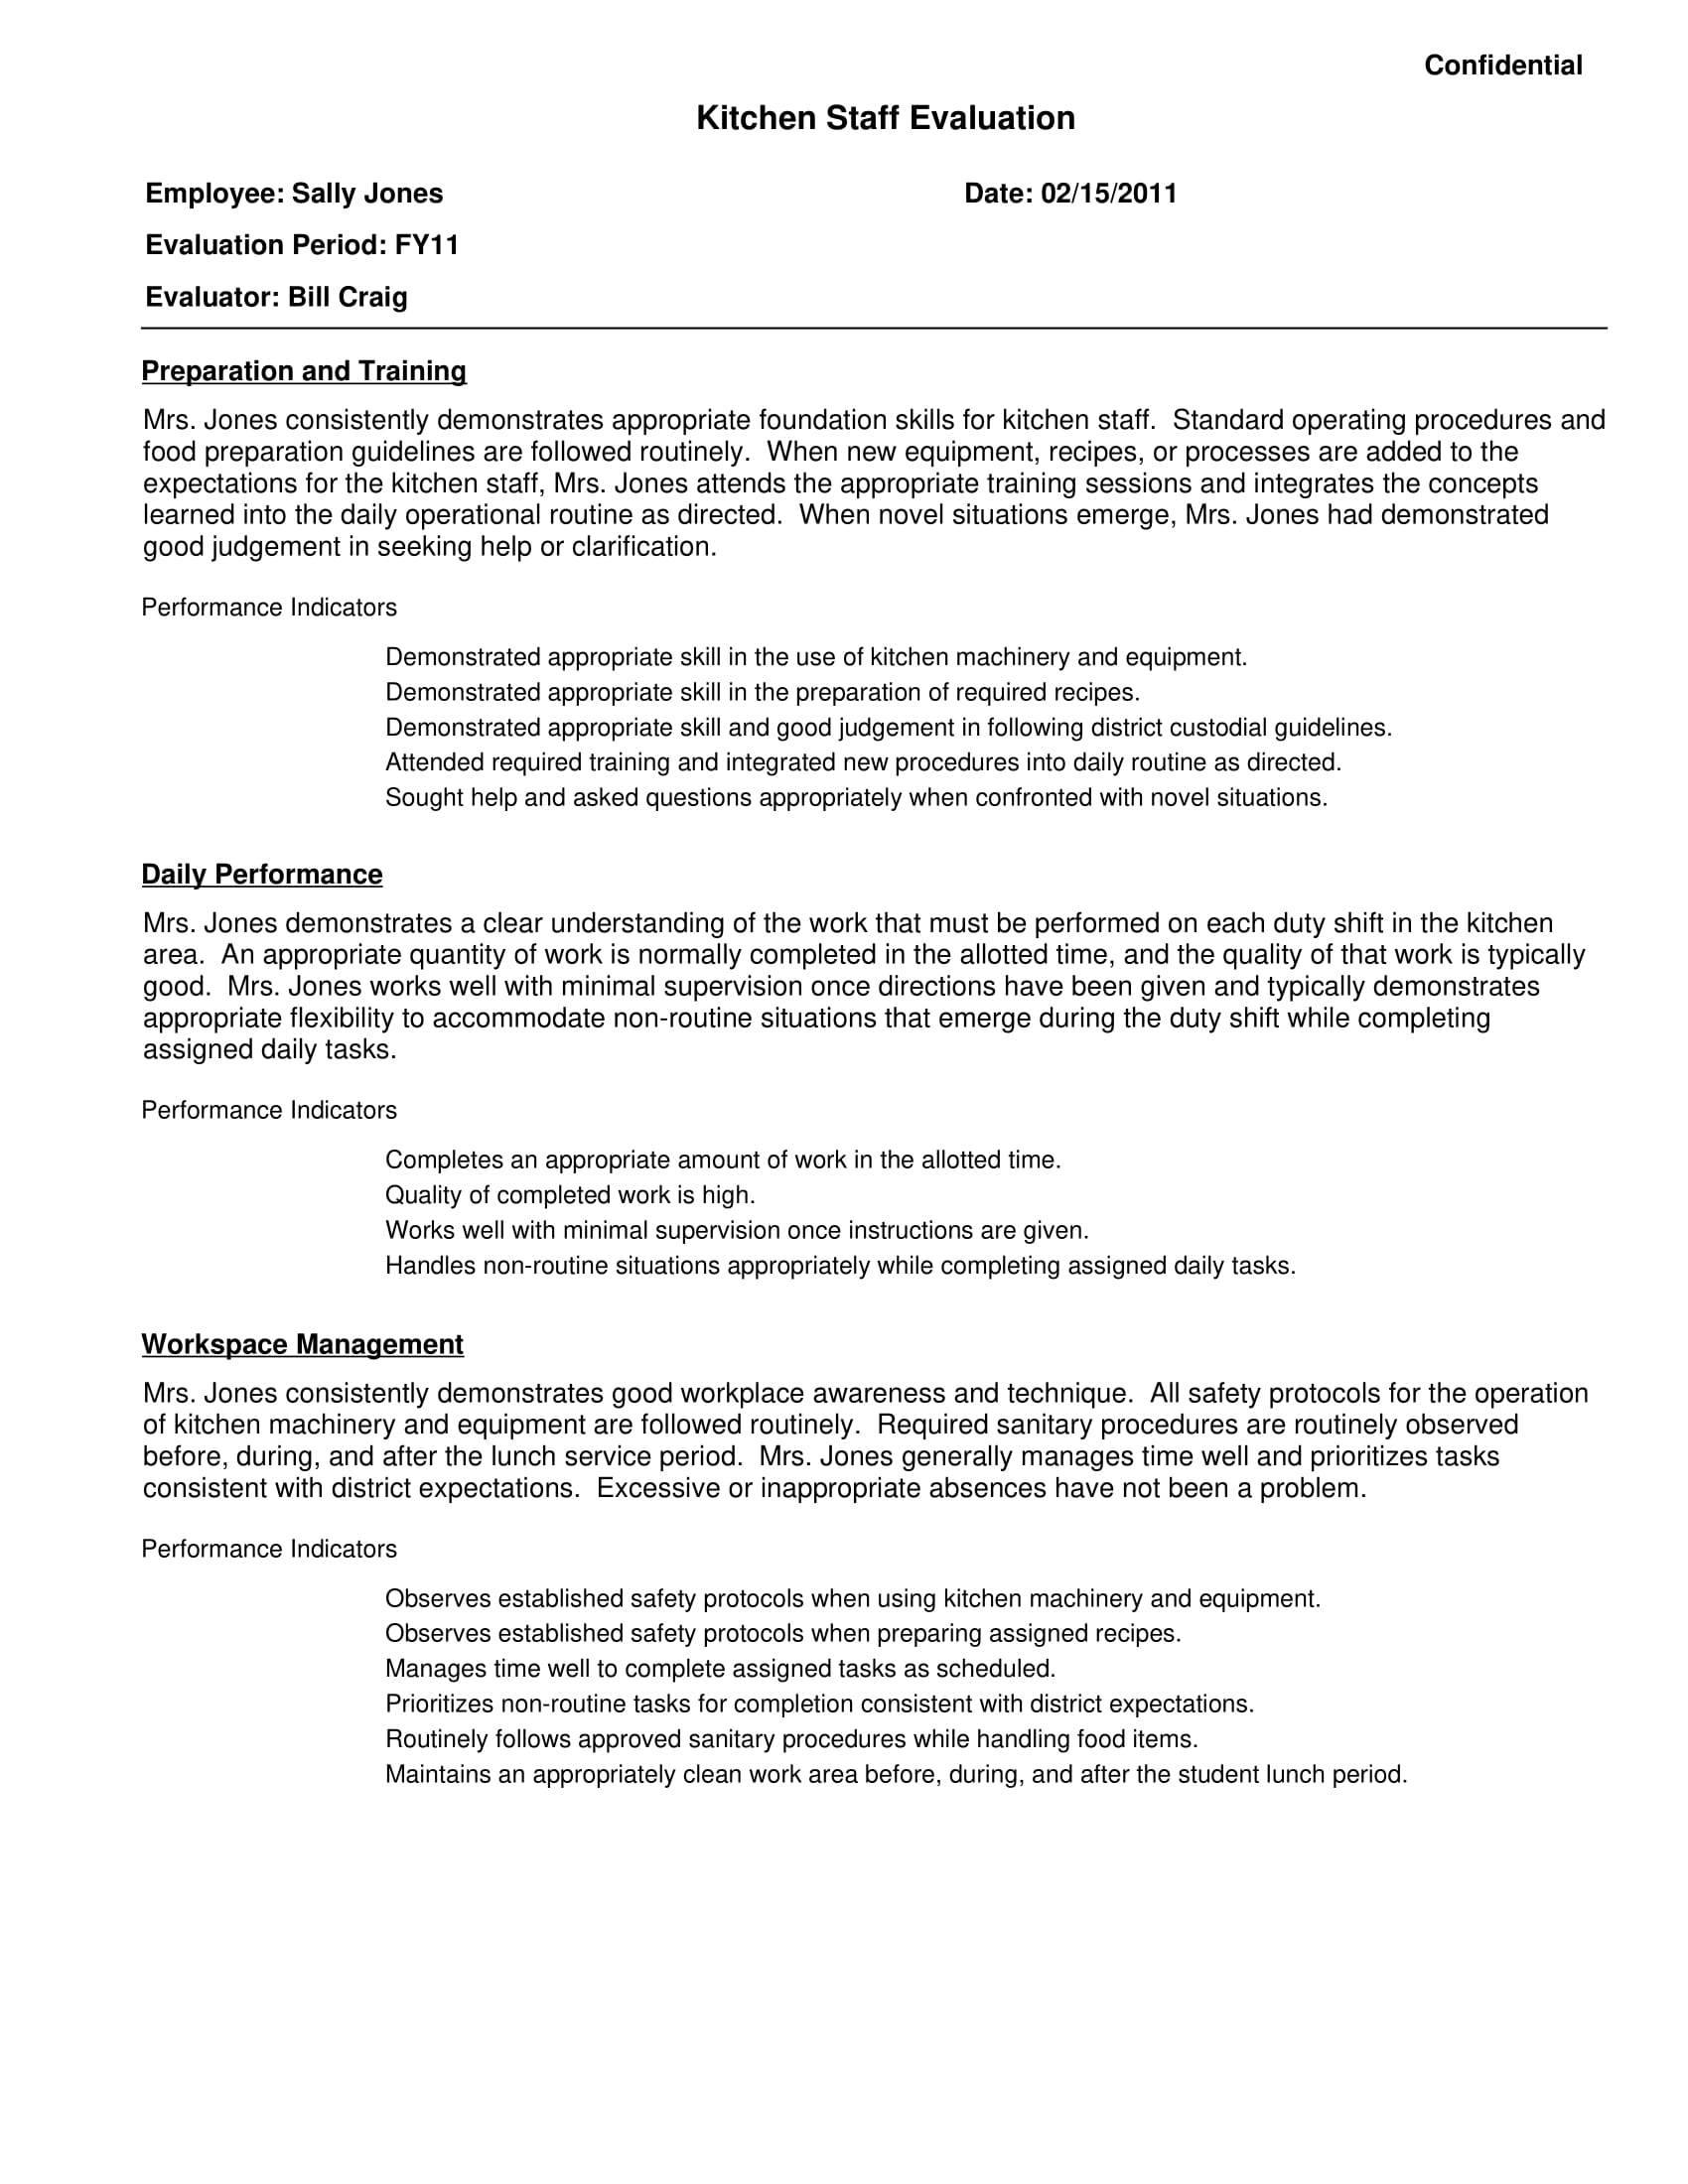 kitchen staff evaluation sample template 1